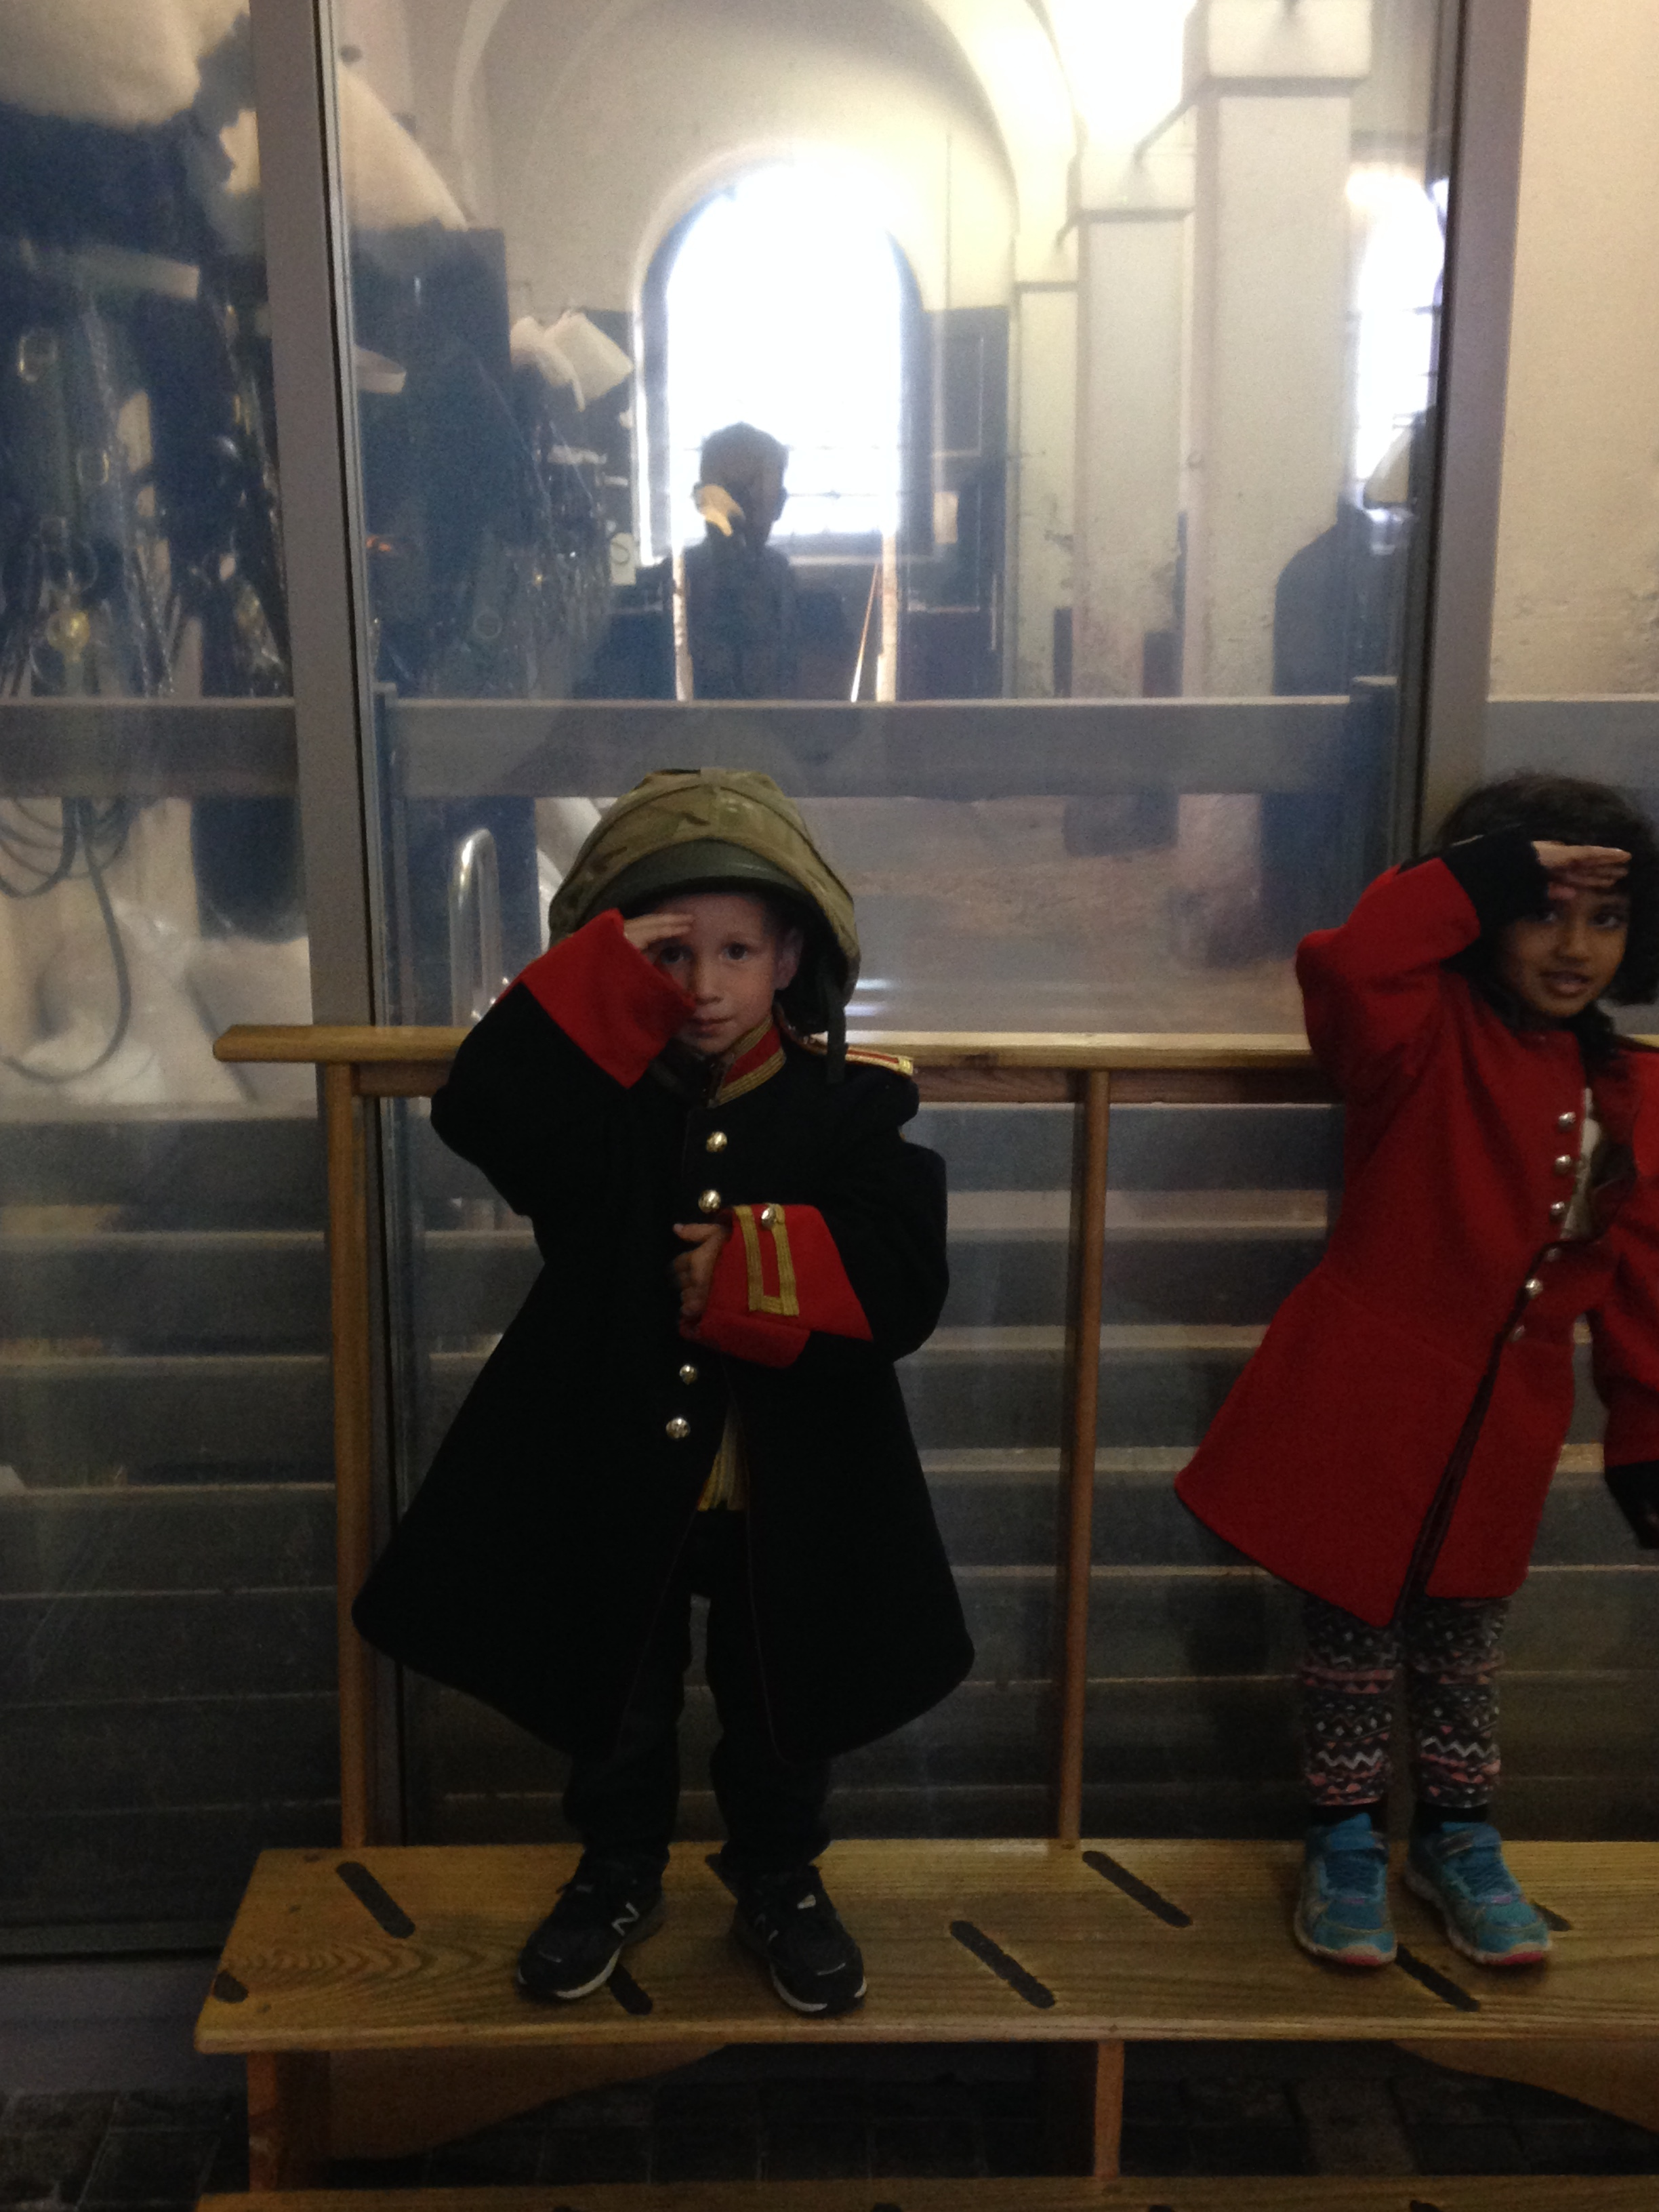 Playing dress up at the Household Cavalry Museum